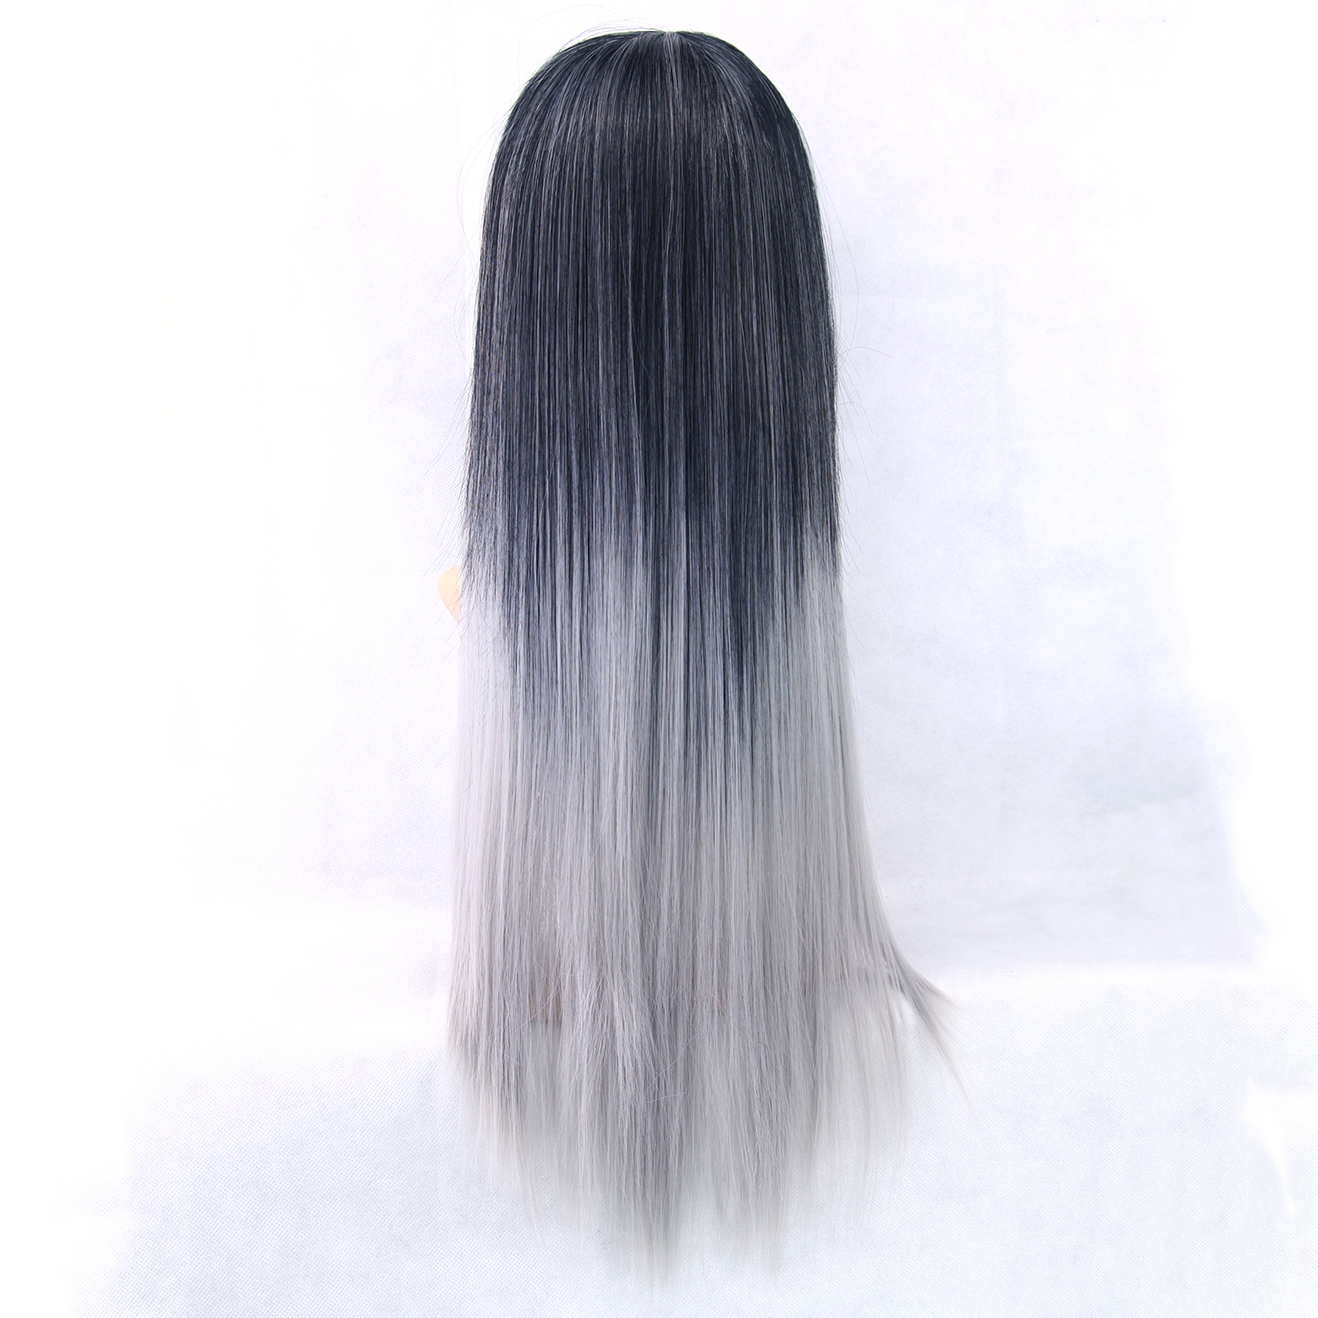 Soowee 6 Color Long Straight Black to Gray Ombre Hair Piece Heat Resistant Fiber Synthetic Hair